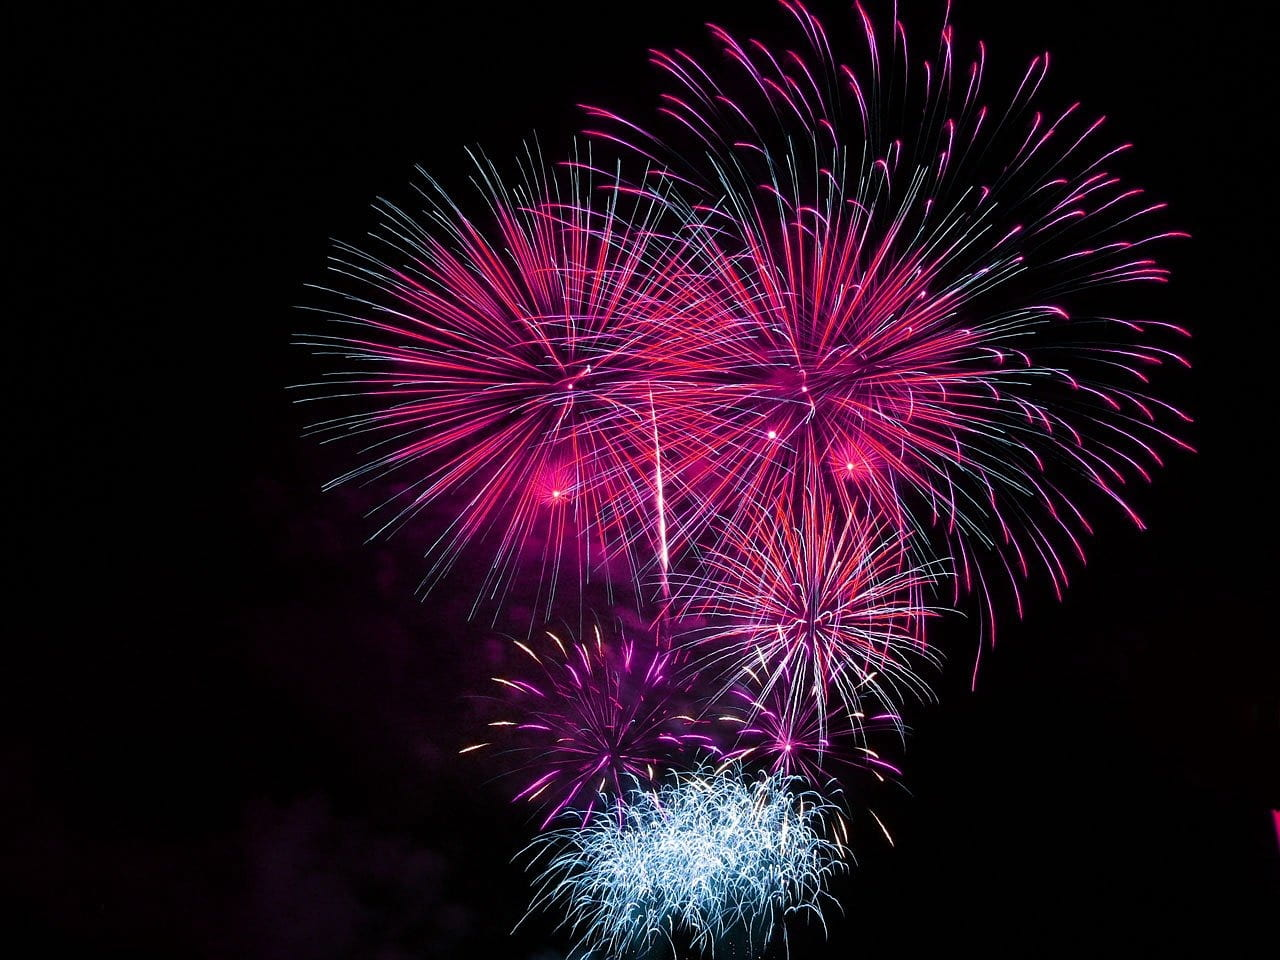 July 4th Is Coming Up – Here Are Related Teaching & Learning Resources